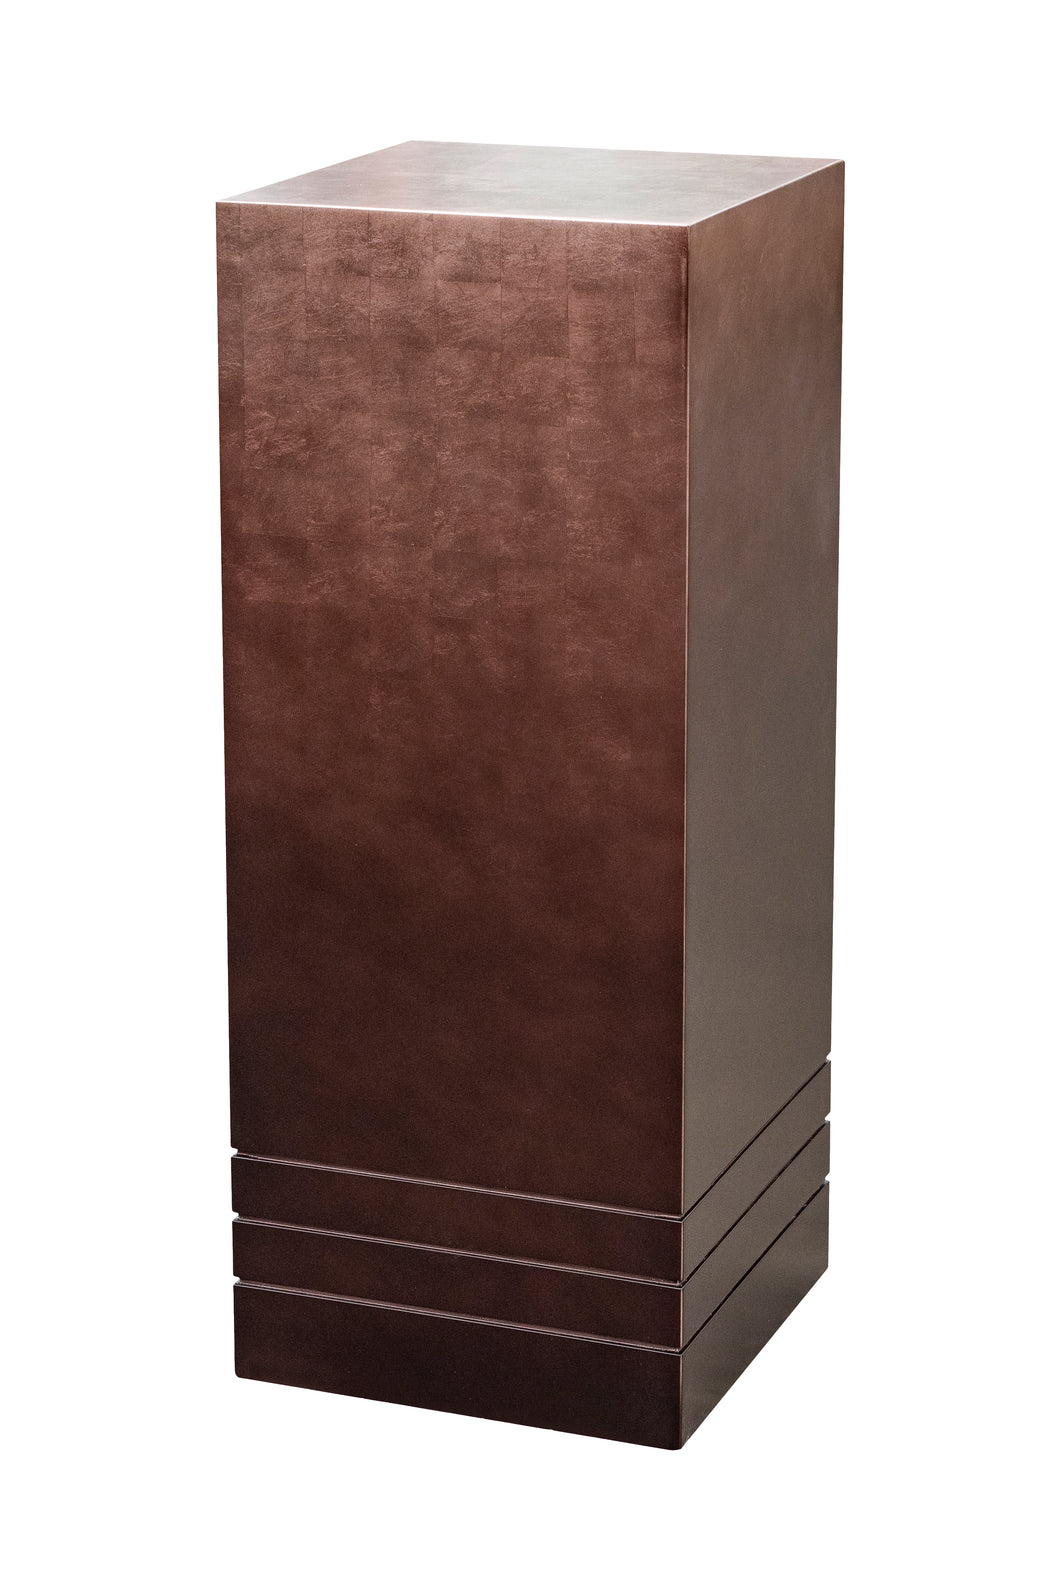 Pedestal (metallic)